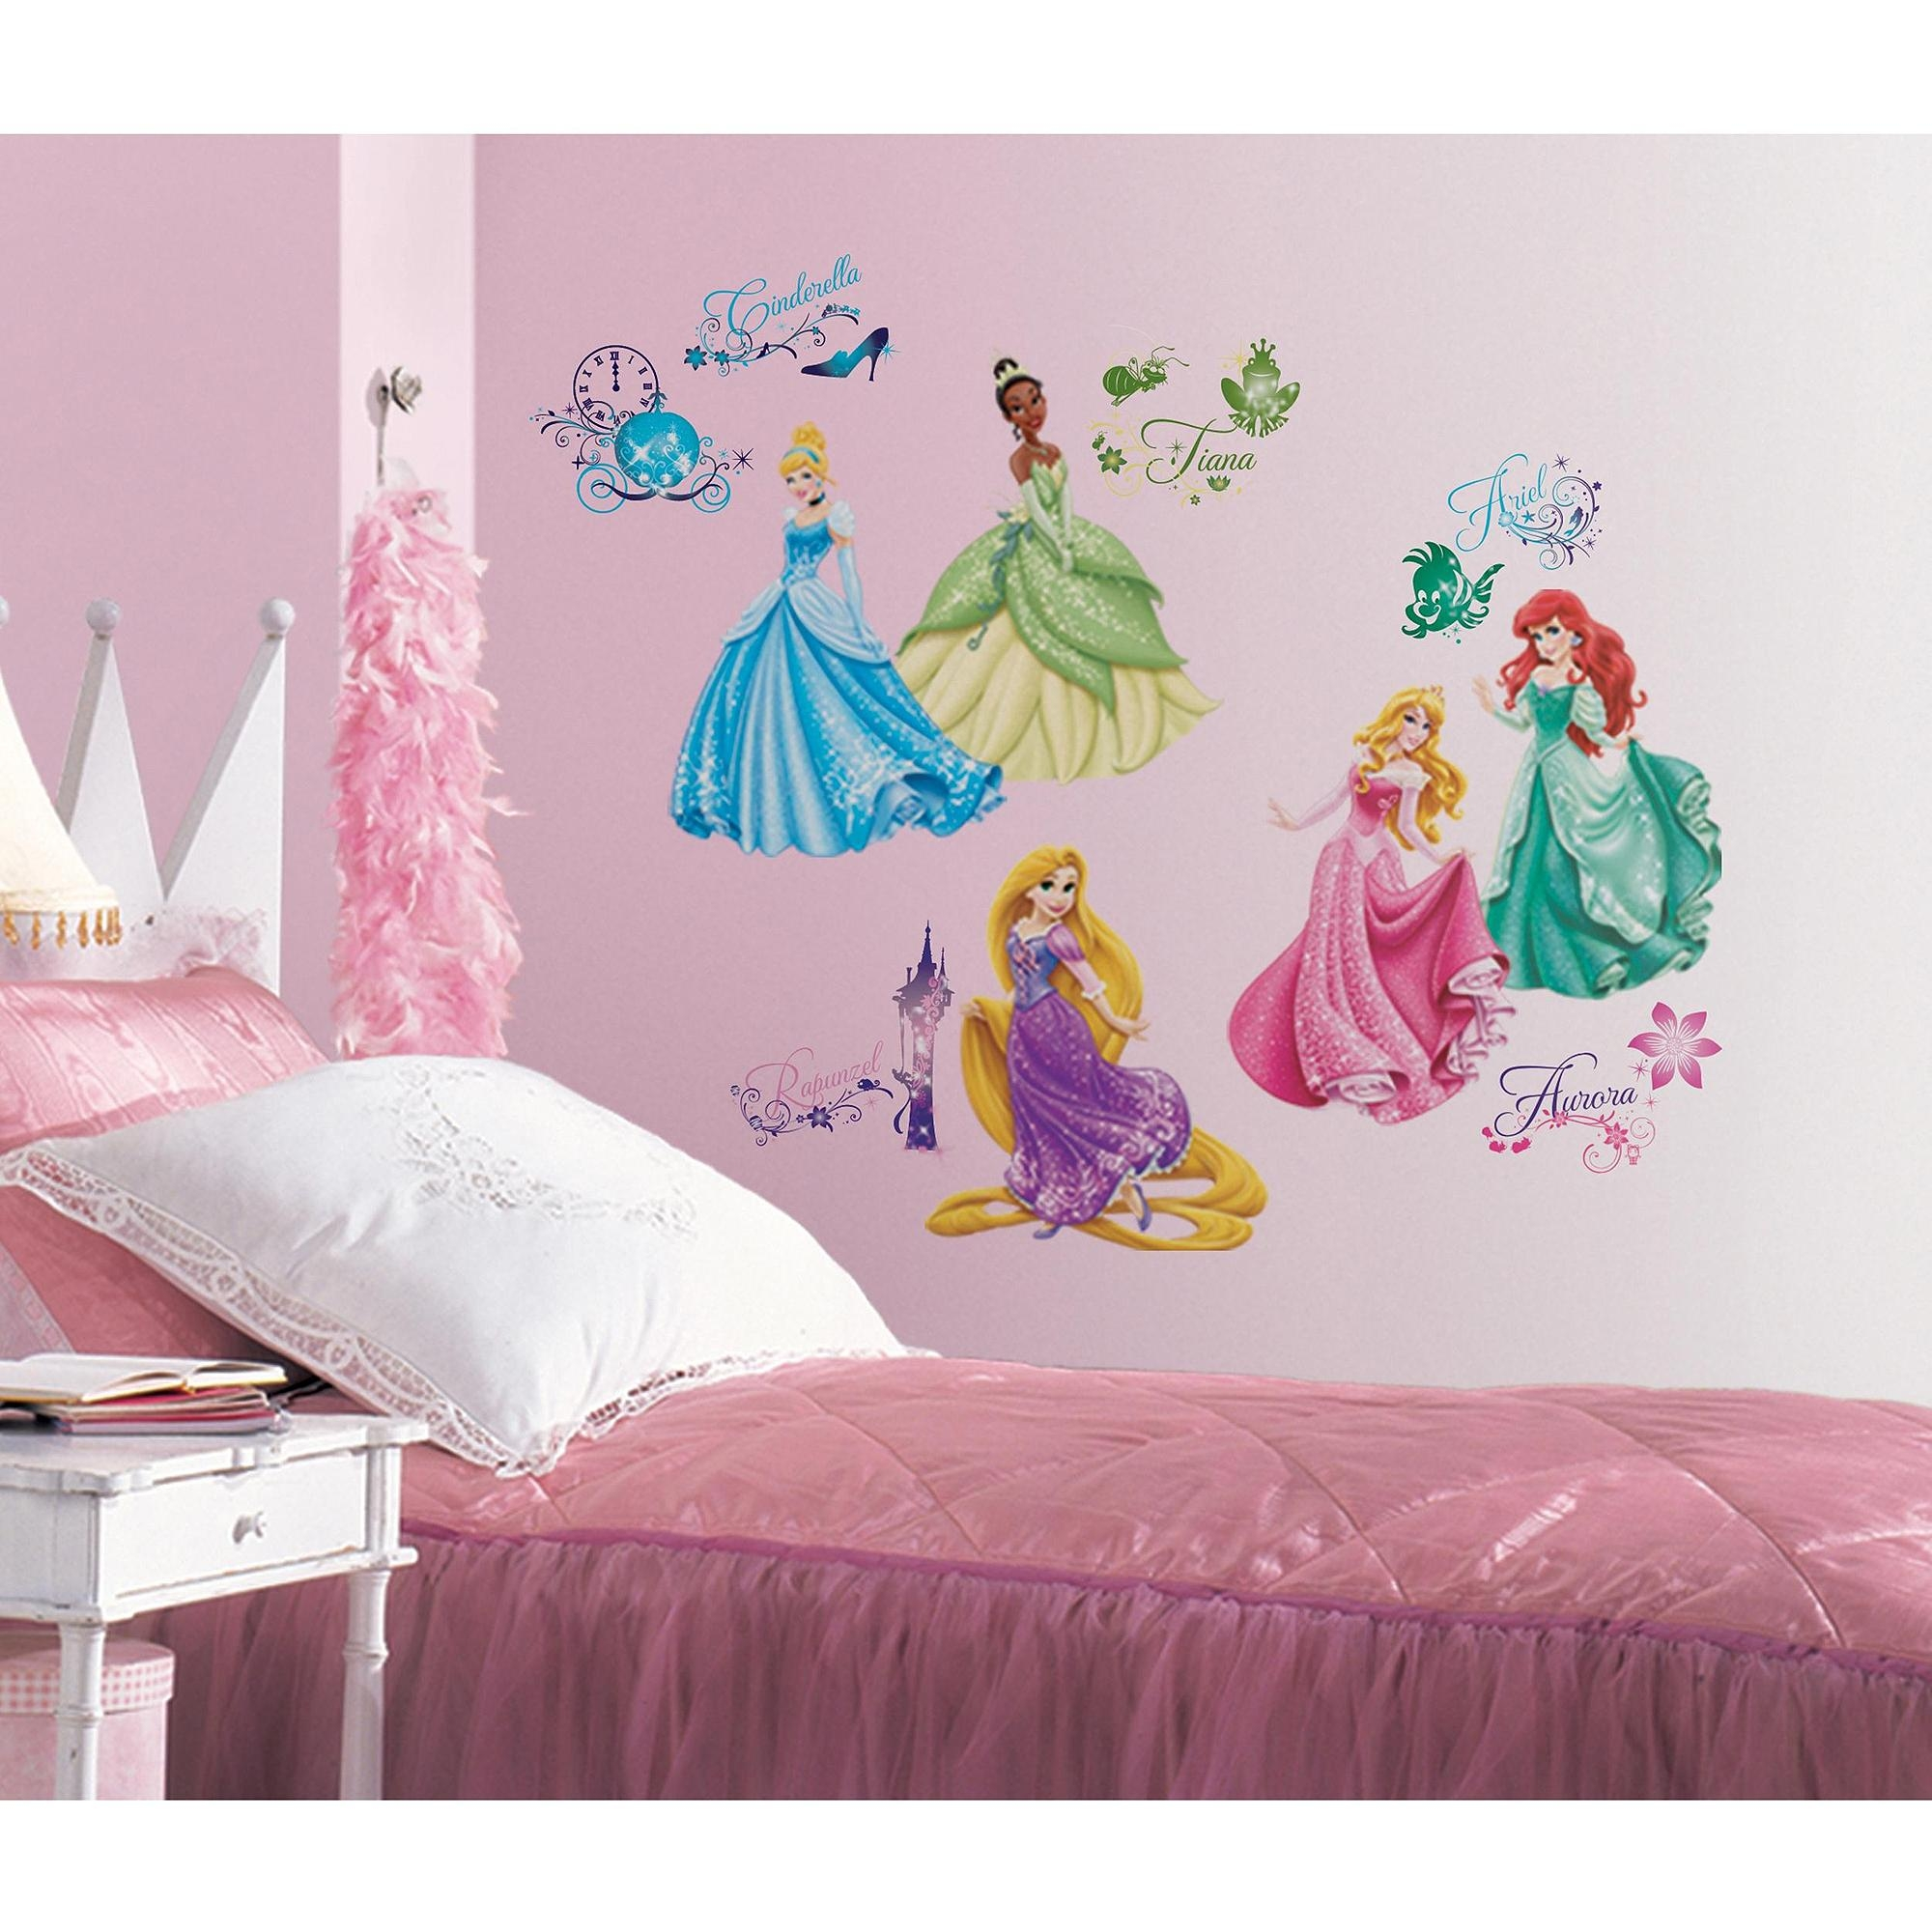 Disney Princess Royal Debut Peel And Stick Wall Decals – Walmart In Preschool Classroom Wall Decals (Image 10 of 20)